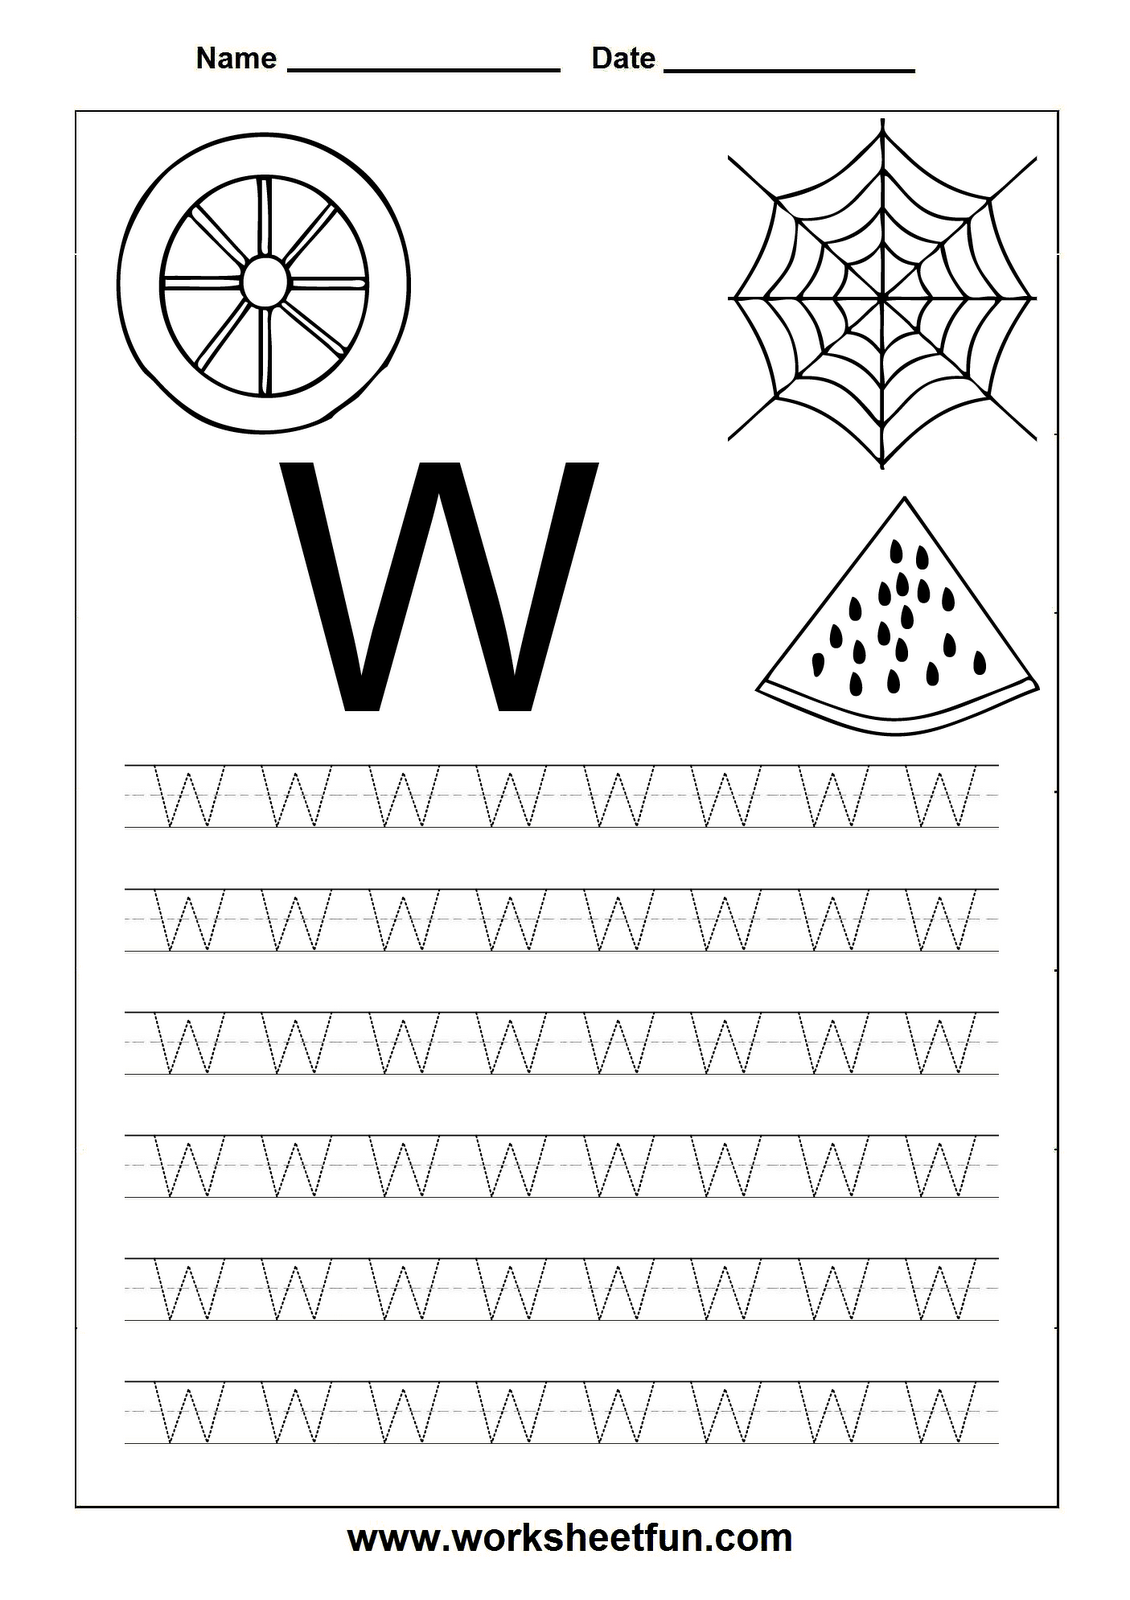 Free Printable Worksheets Letter Tracing Worksheets For – Letter Tracing Worksheets for Kindergarten